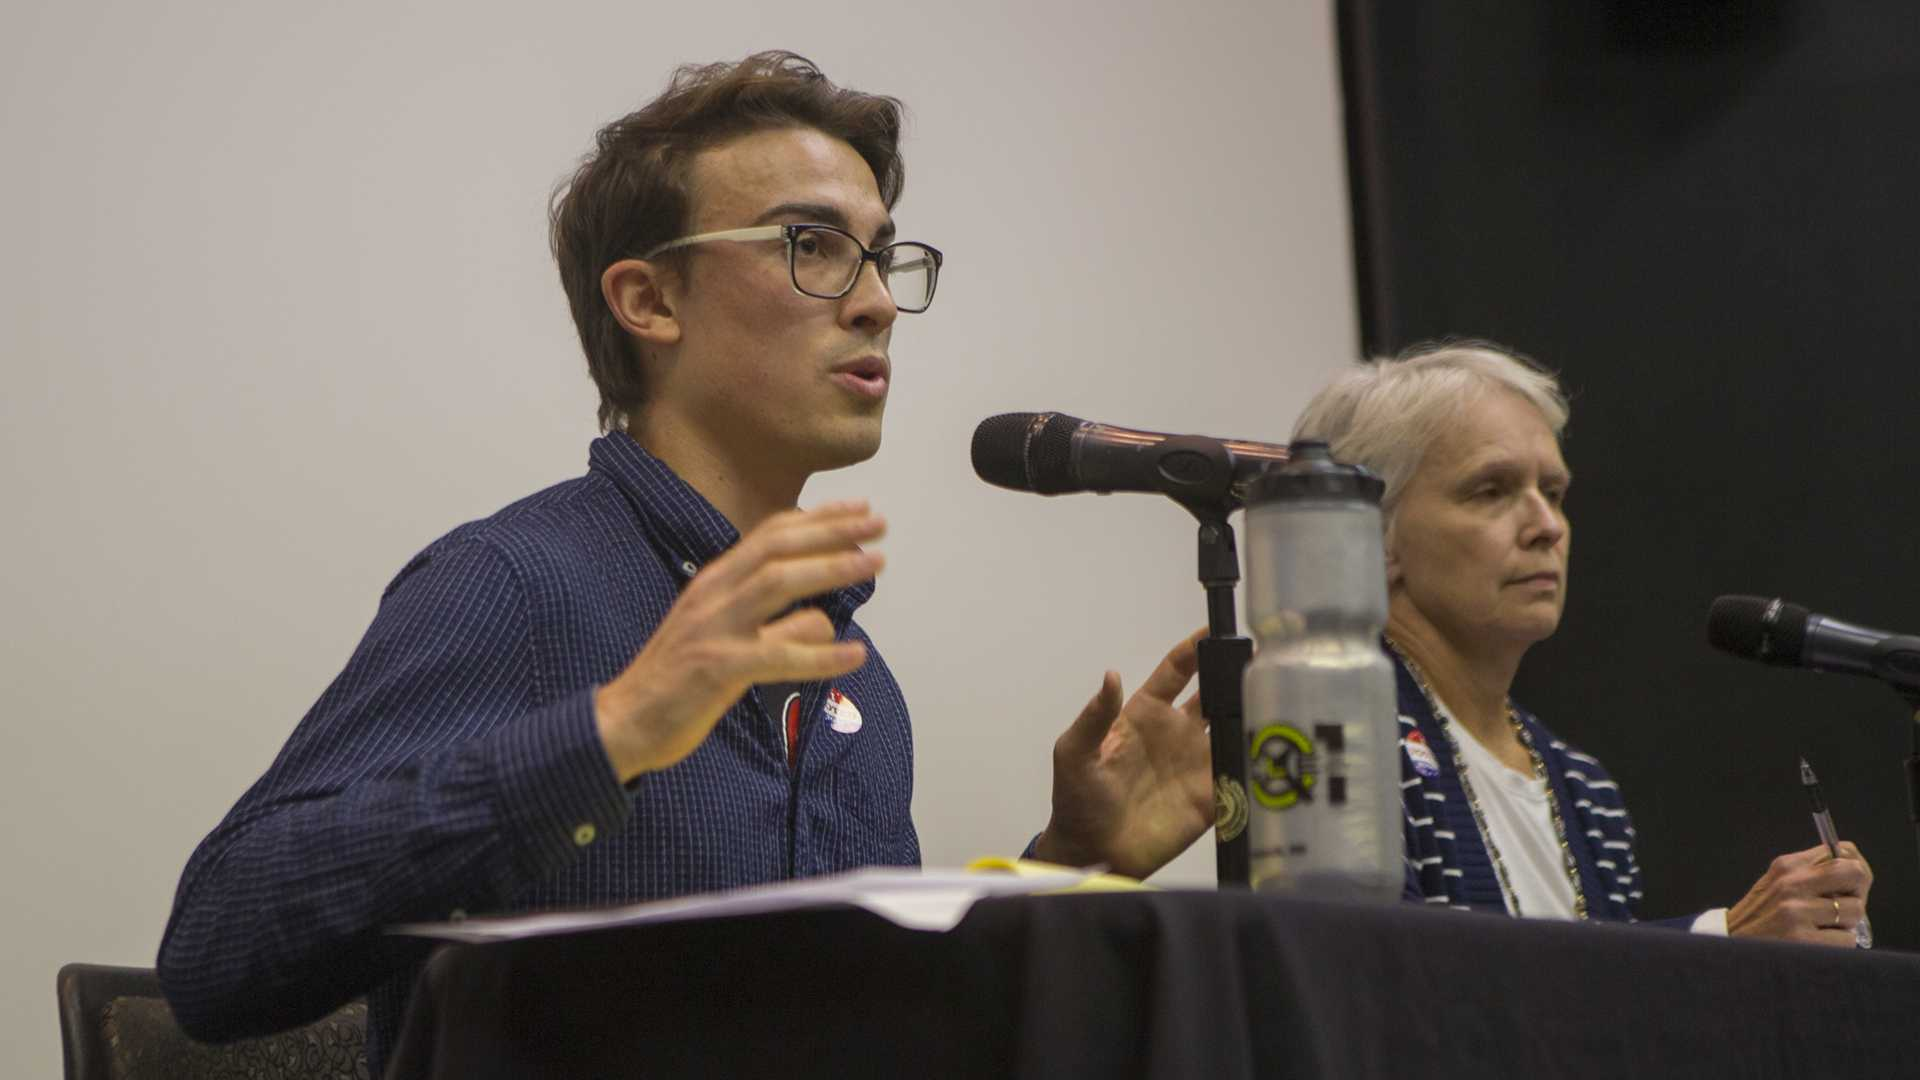 Iowa City City Council District B candidate Ryan Hall speaks during the UISG City Council Forum in the IMU on Wednesday, Oct. 18, 2017. The event gave students and community members the opportunity to ask city council candidates about issues. (Lily Smith/The Daily Iowan)